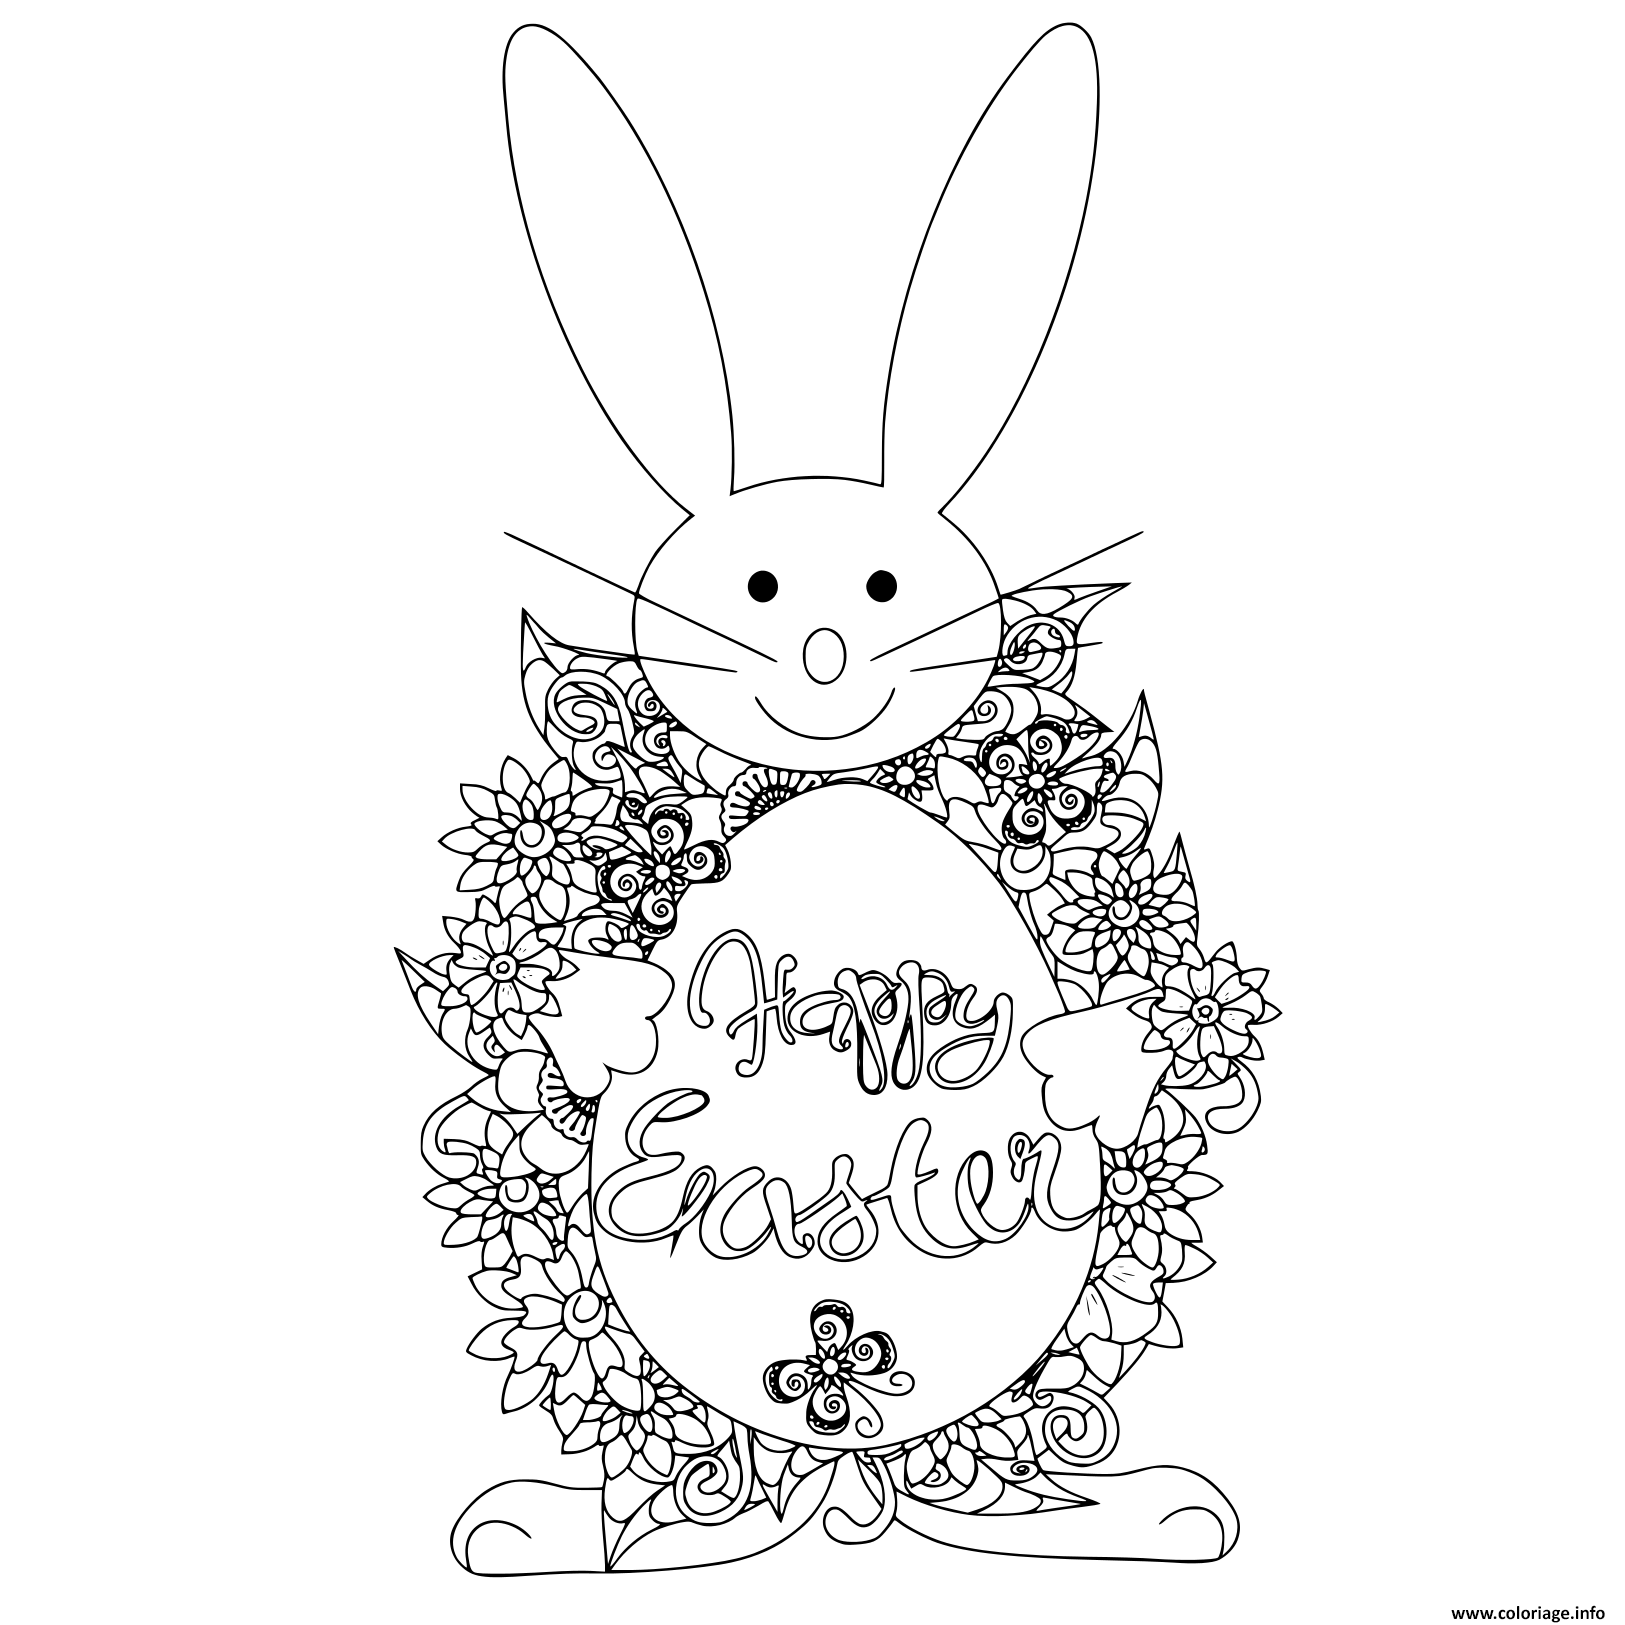 Coloriage Anti Stress Lapin.Coloriage Paques Sur Oeuf Lapin Anti Stress Jecolorie Com